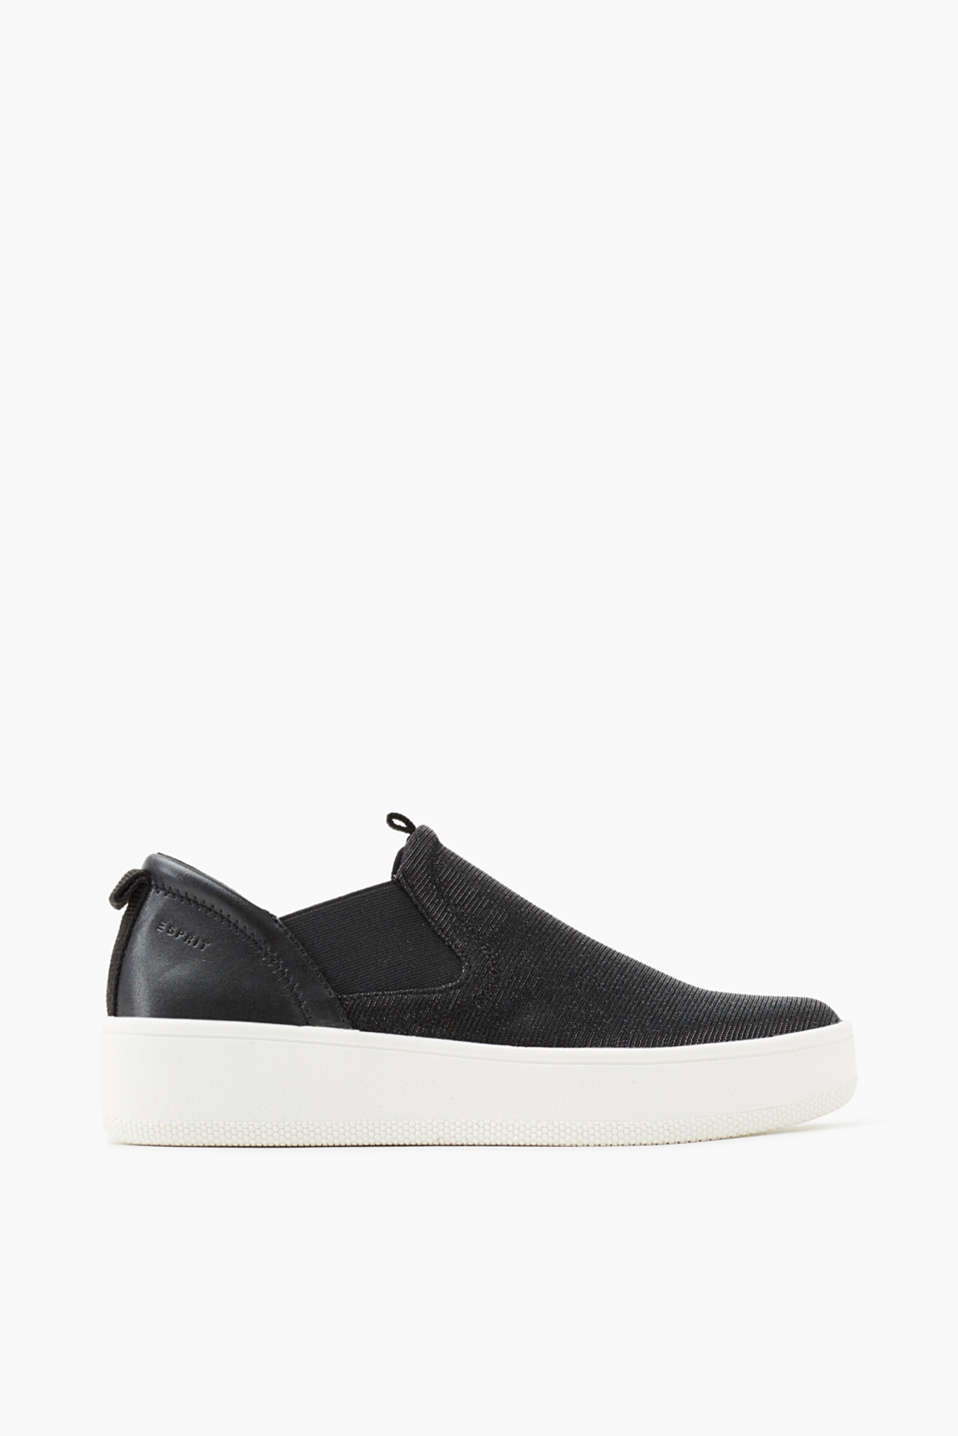 With a distinctive rubber sole: slip-on trainers in a material mix with faux leather and glitter